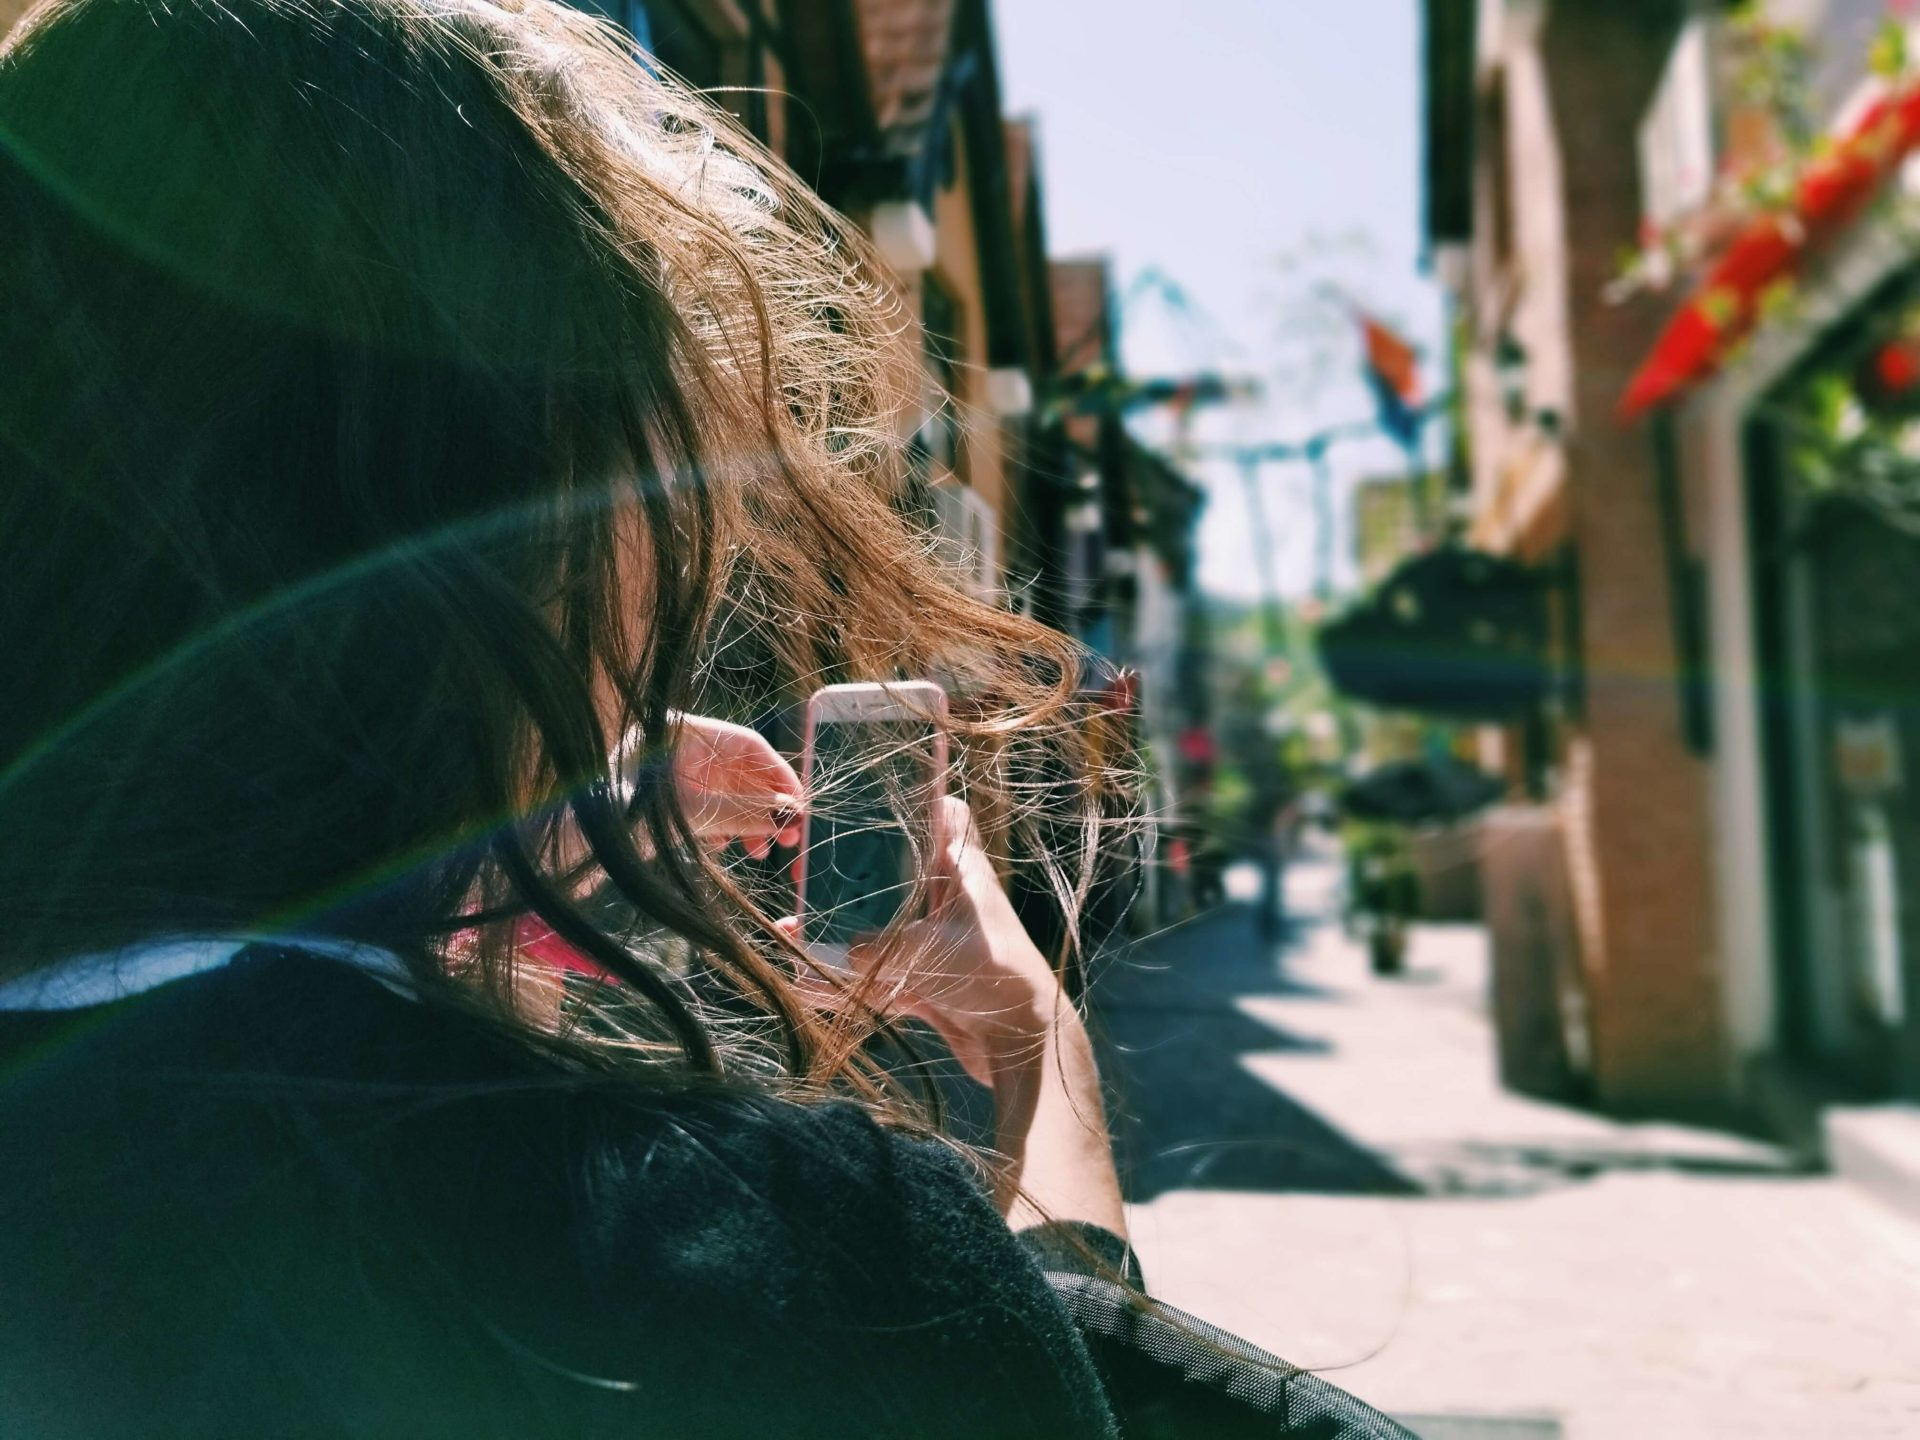 Woman holding phone camera and taking a photo while her hair blows in front of her face